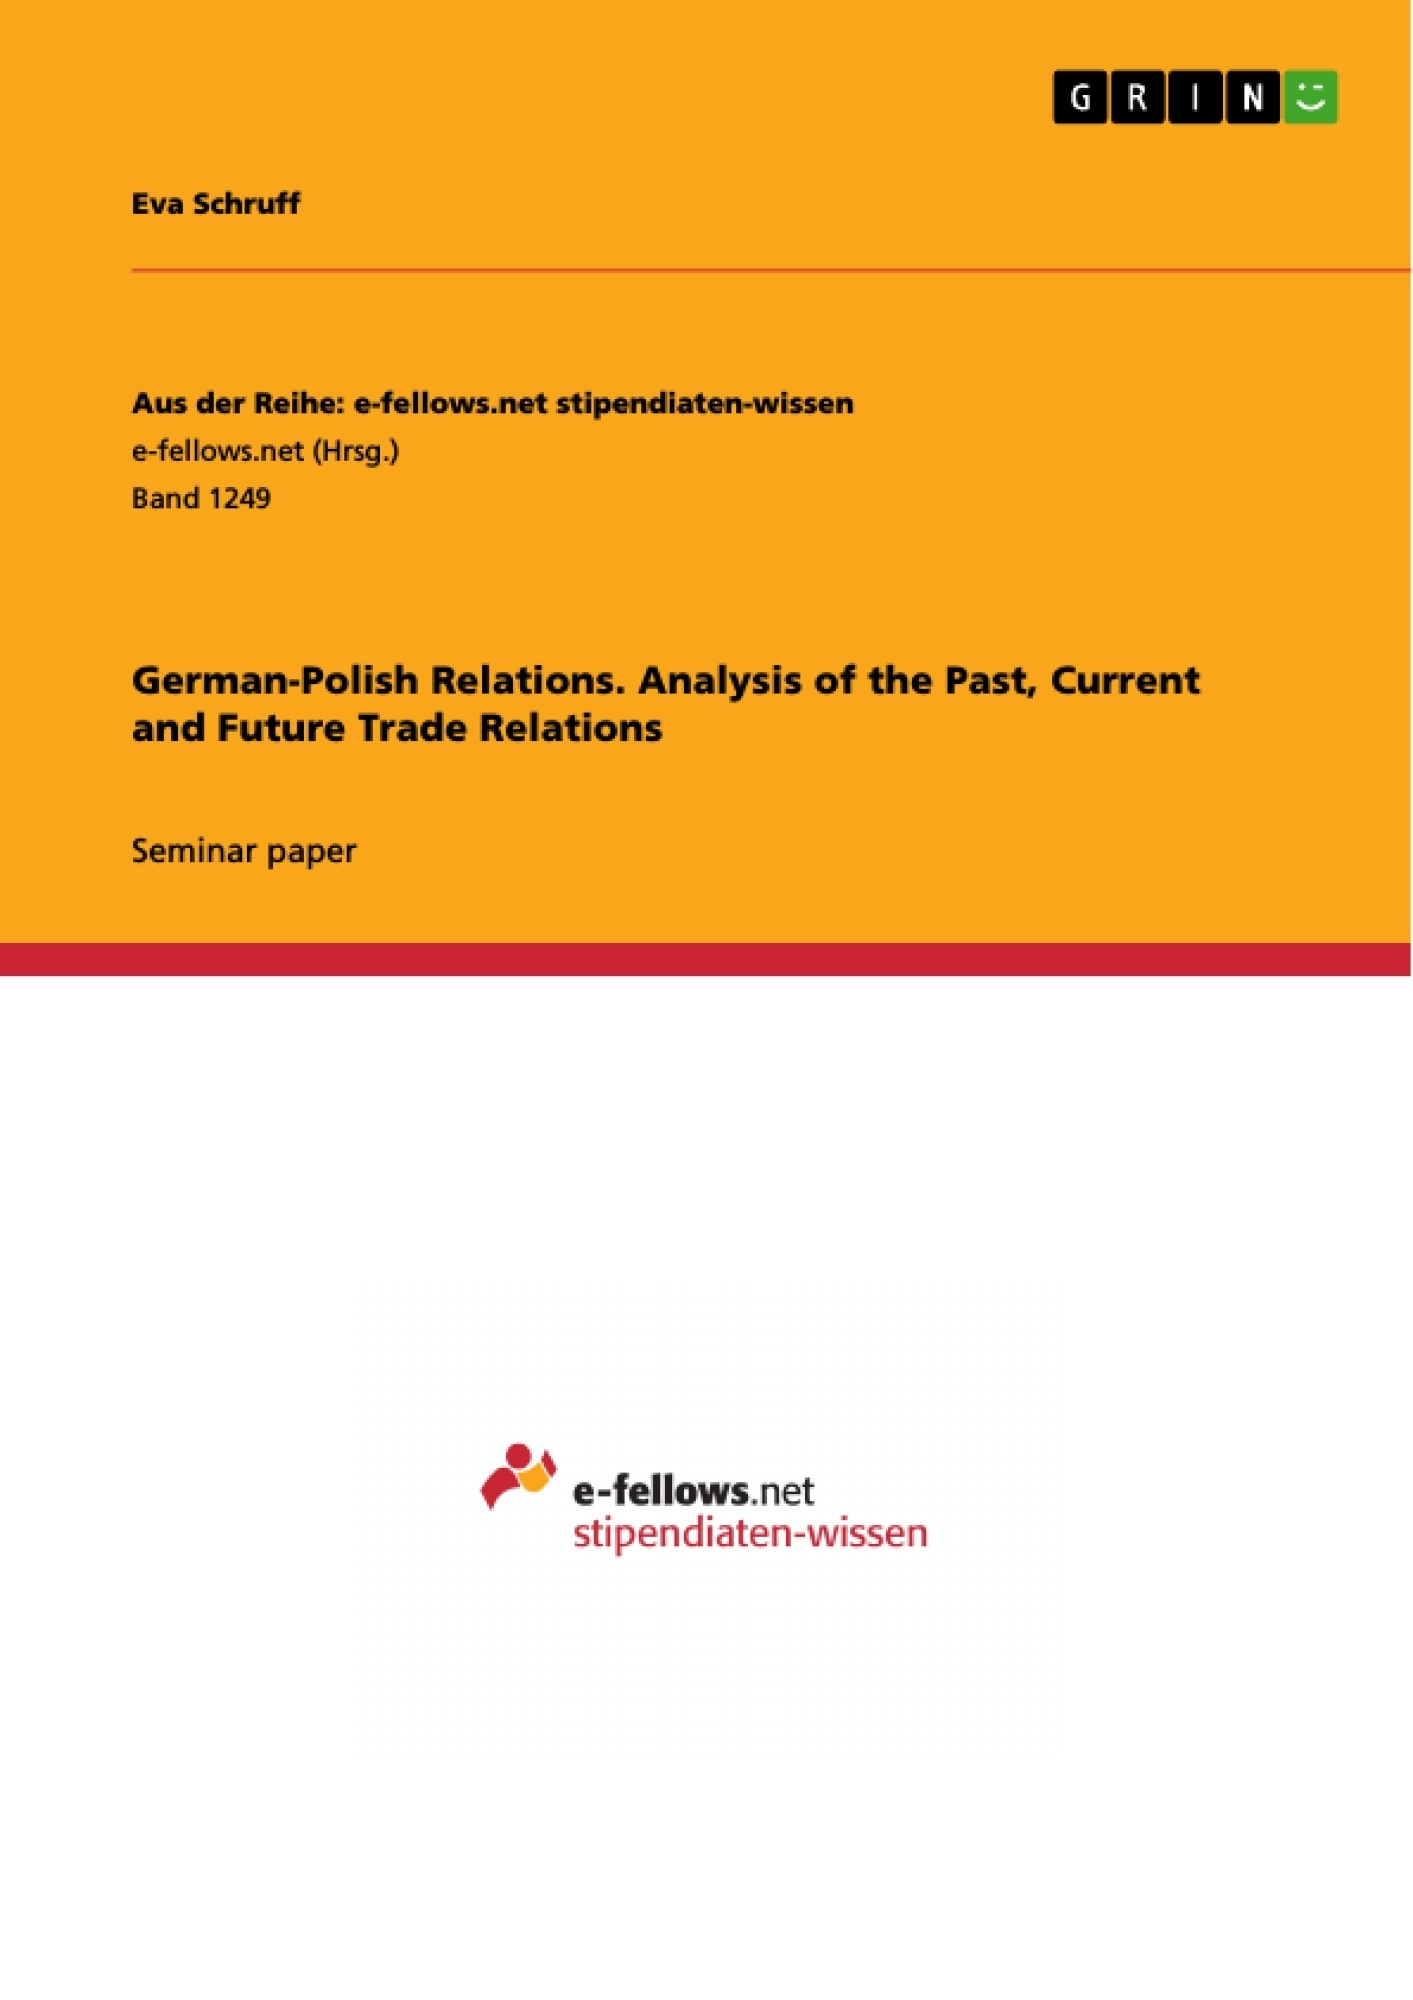 Title: German-Polish Relations. Analysis of the Past, Current and Future Trade Relations